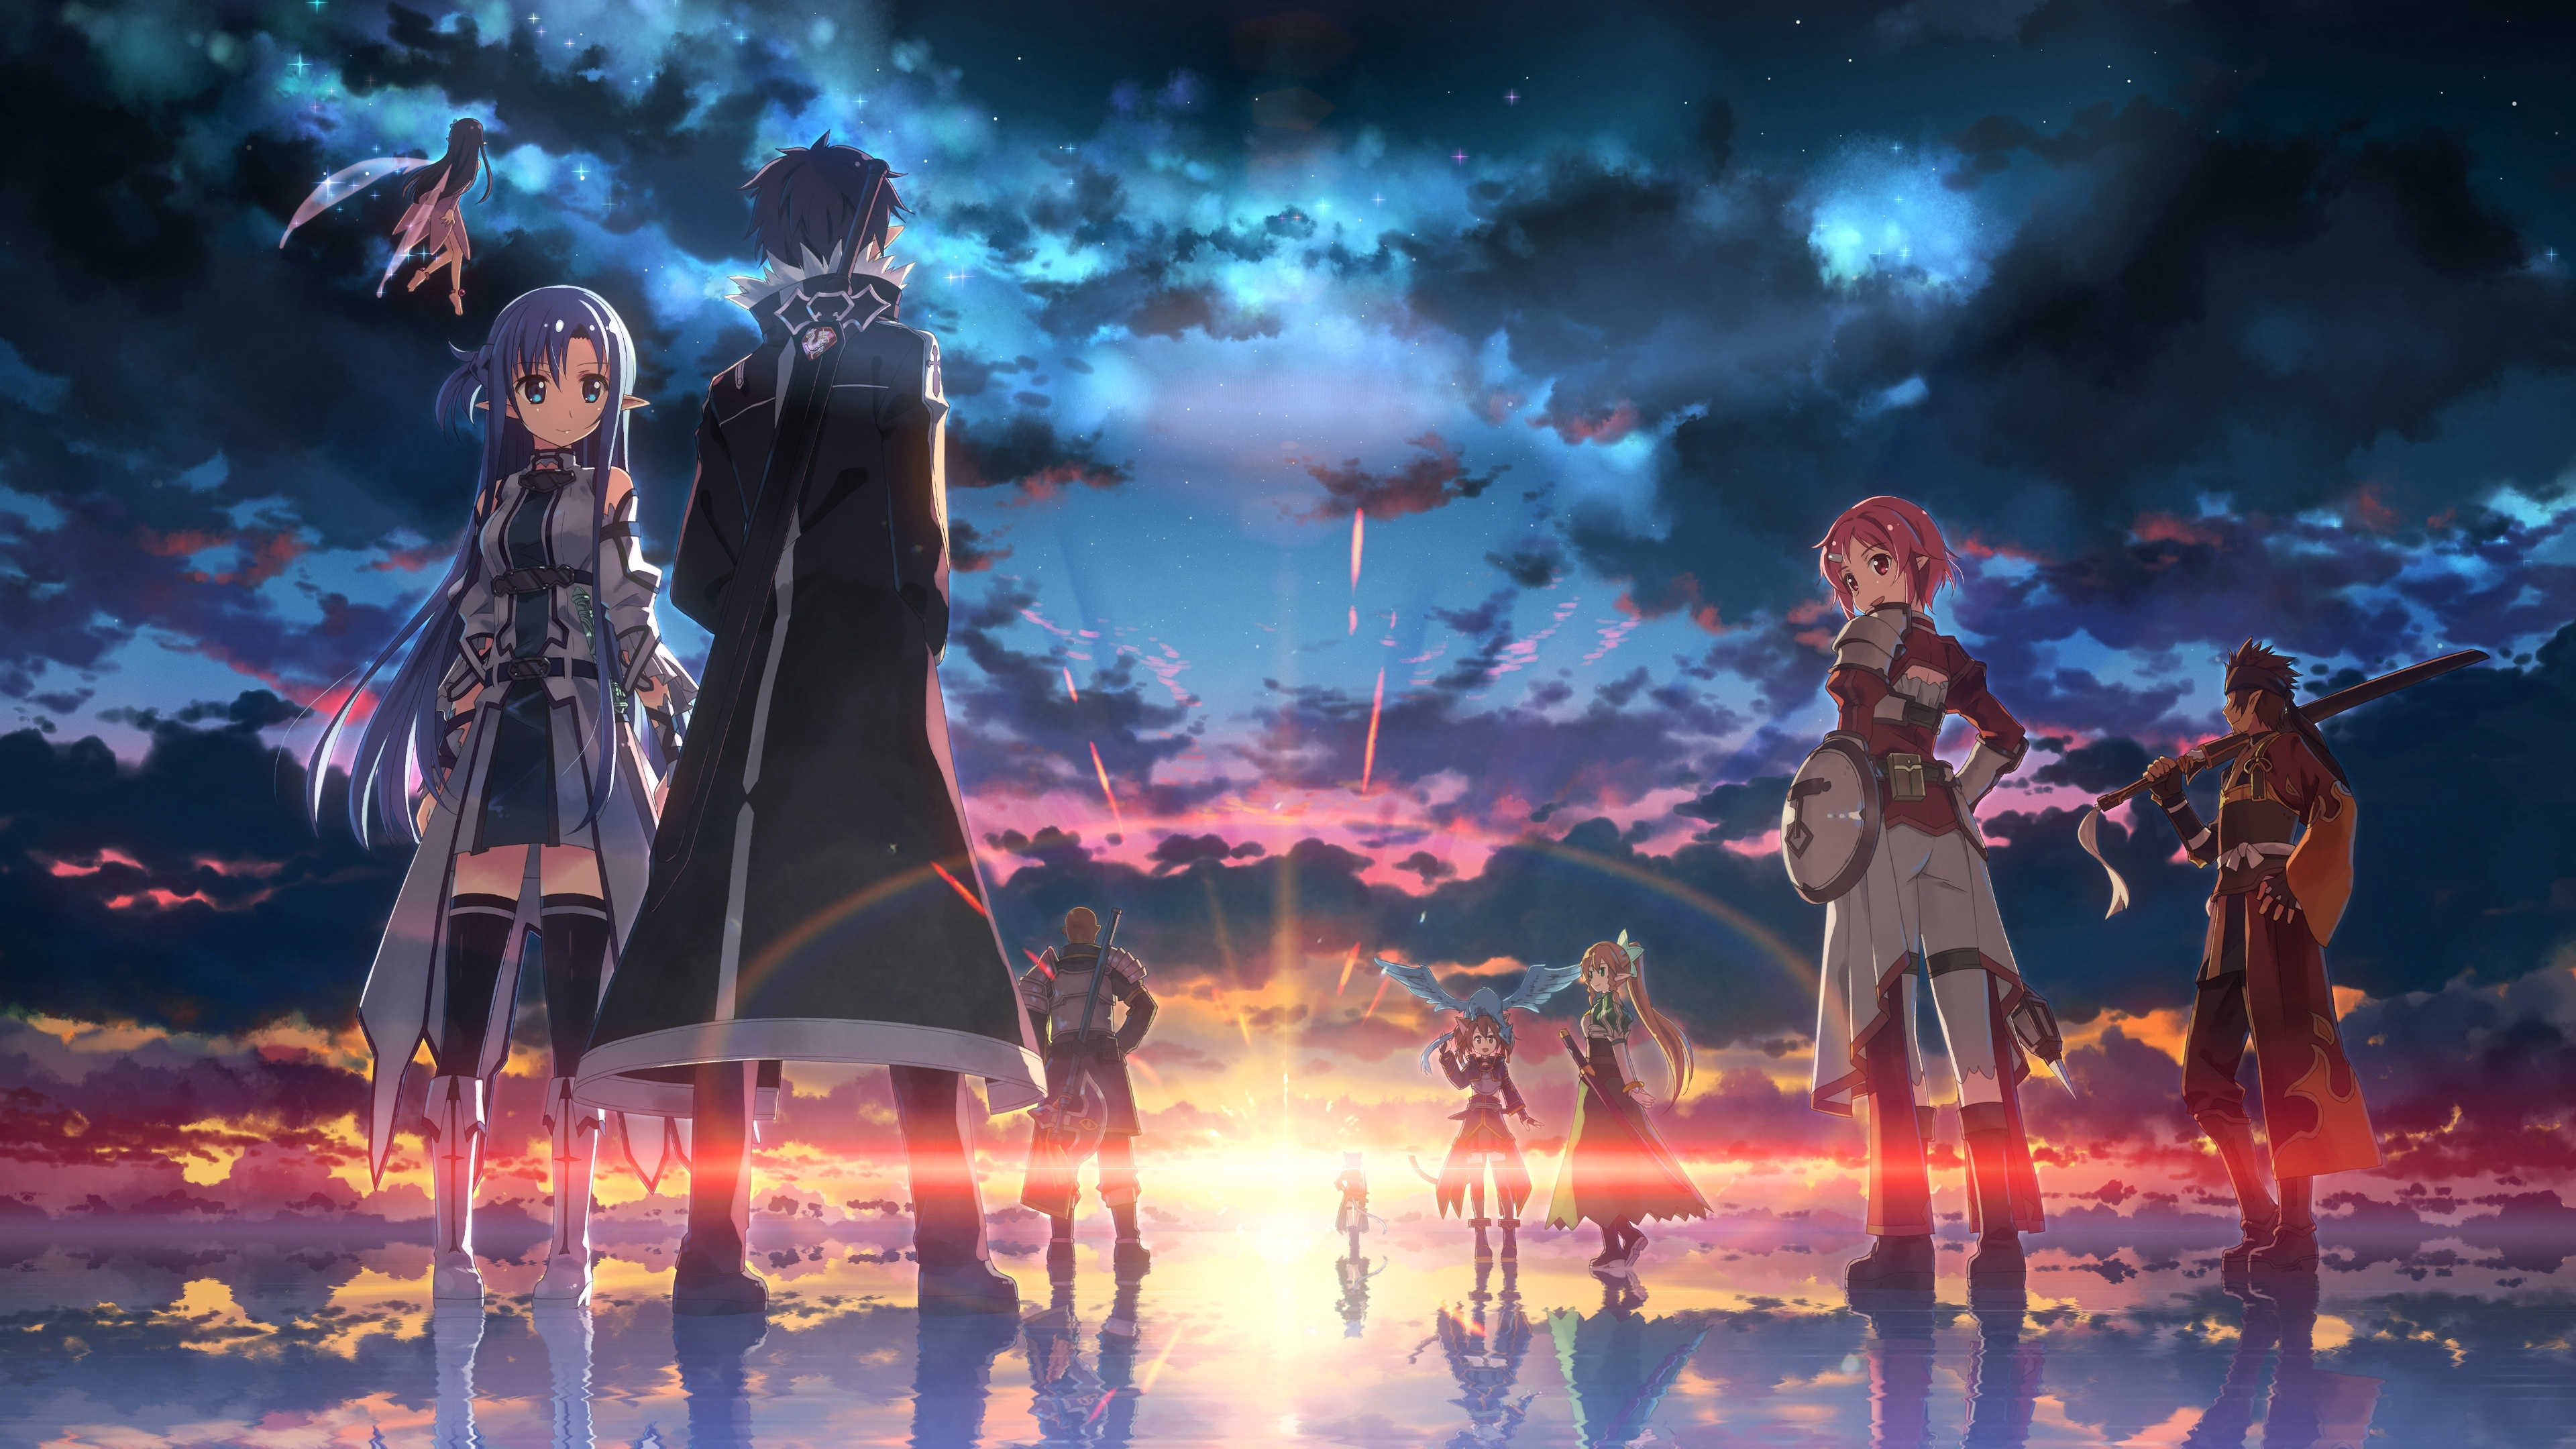 3651 sword art online hd wallpapers | background images - wallpaper